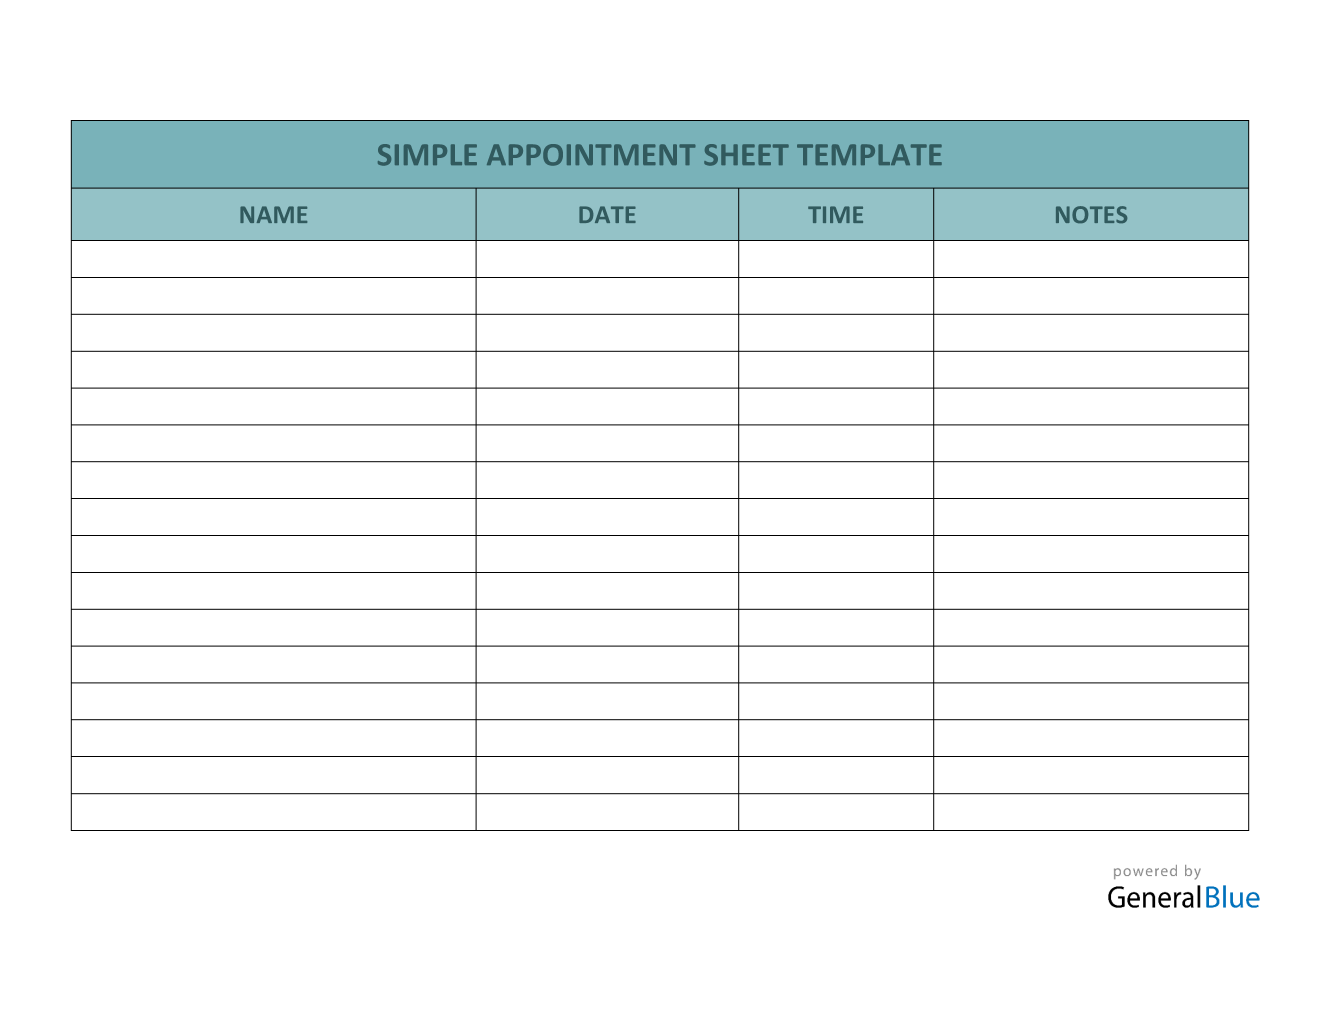 Simple Appointment Sheet Template in Word (Basic) Throughout Appointment Sheet Template Word